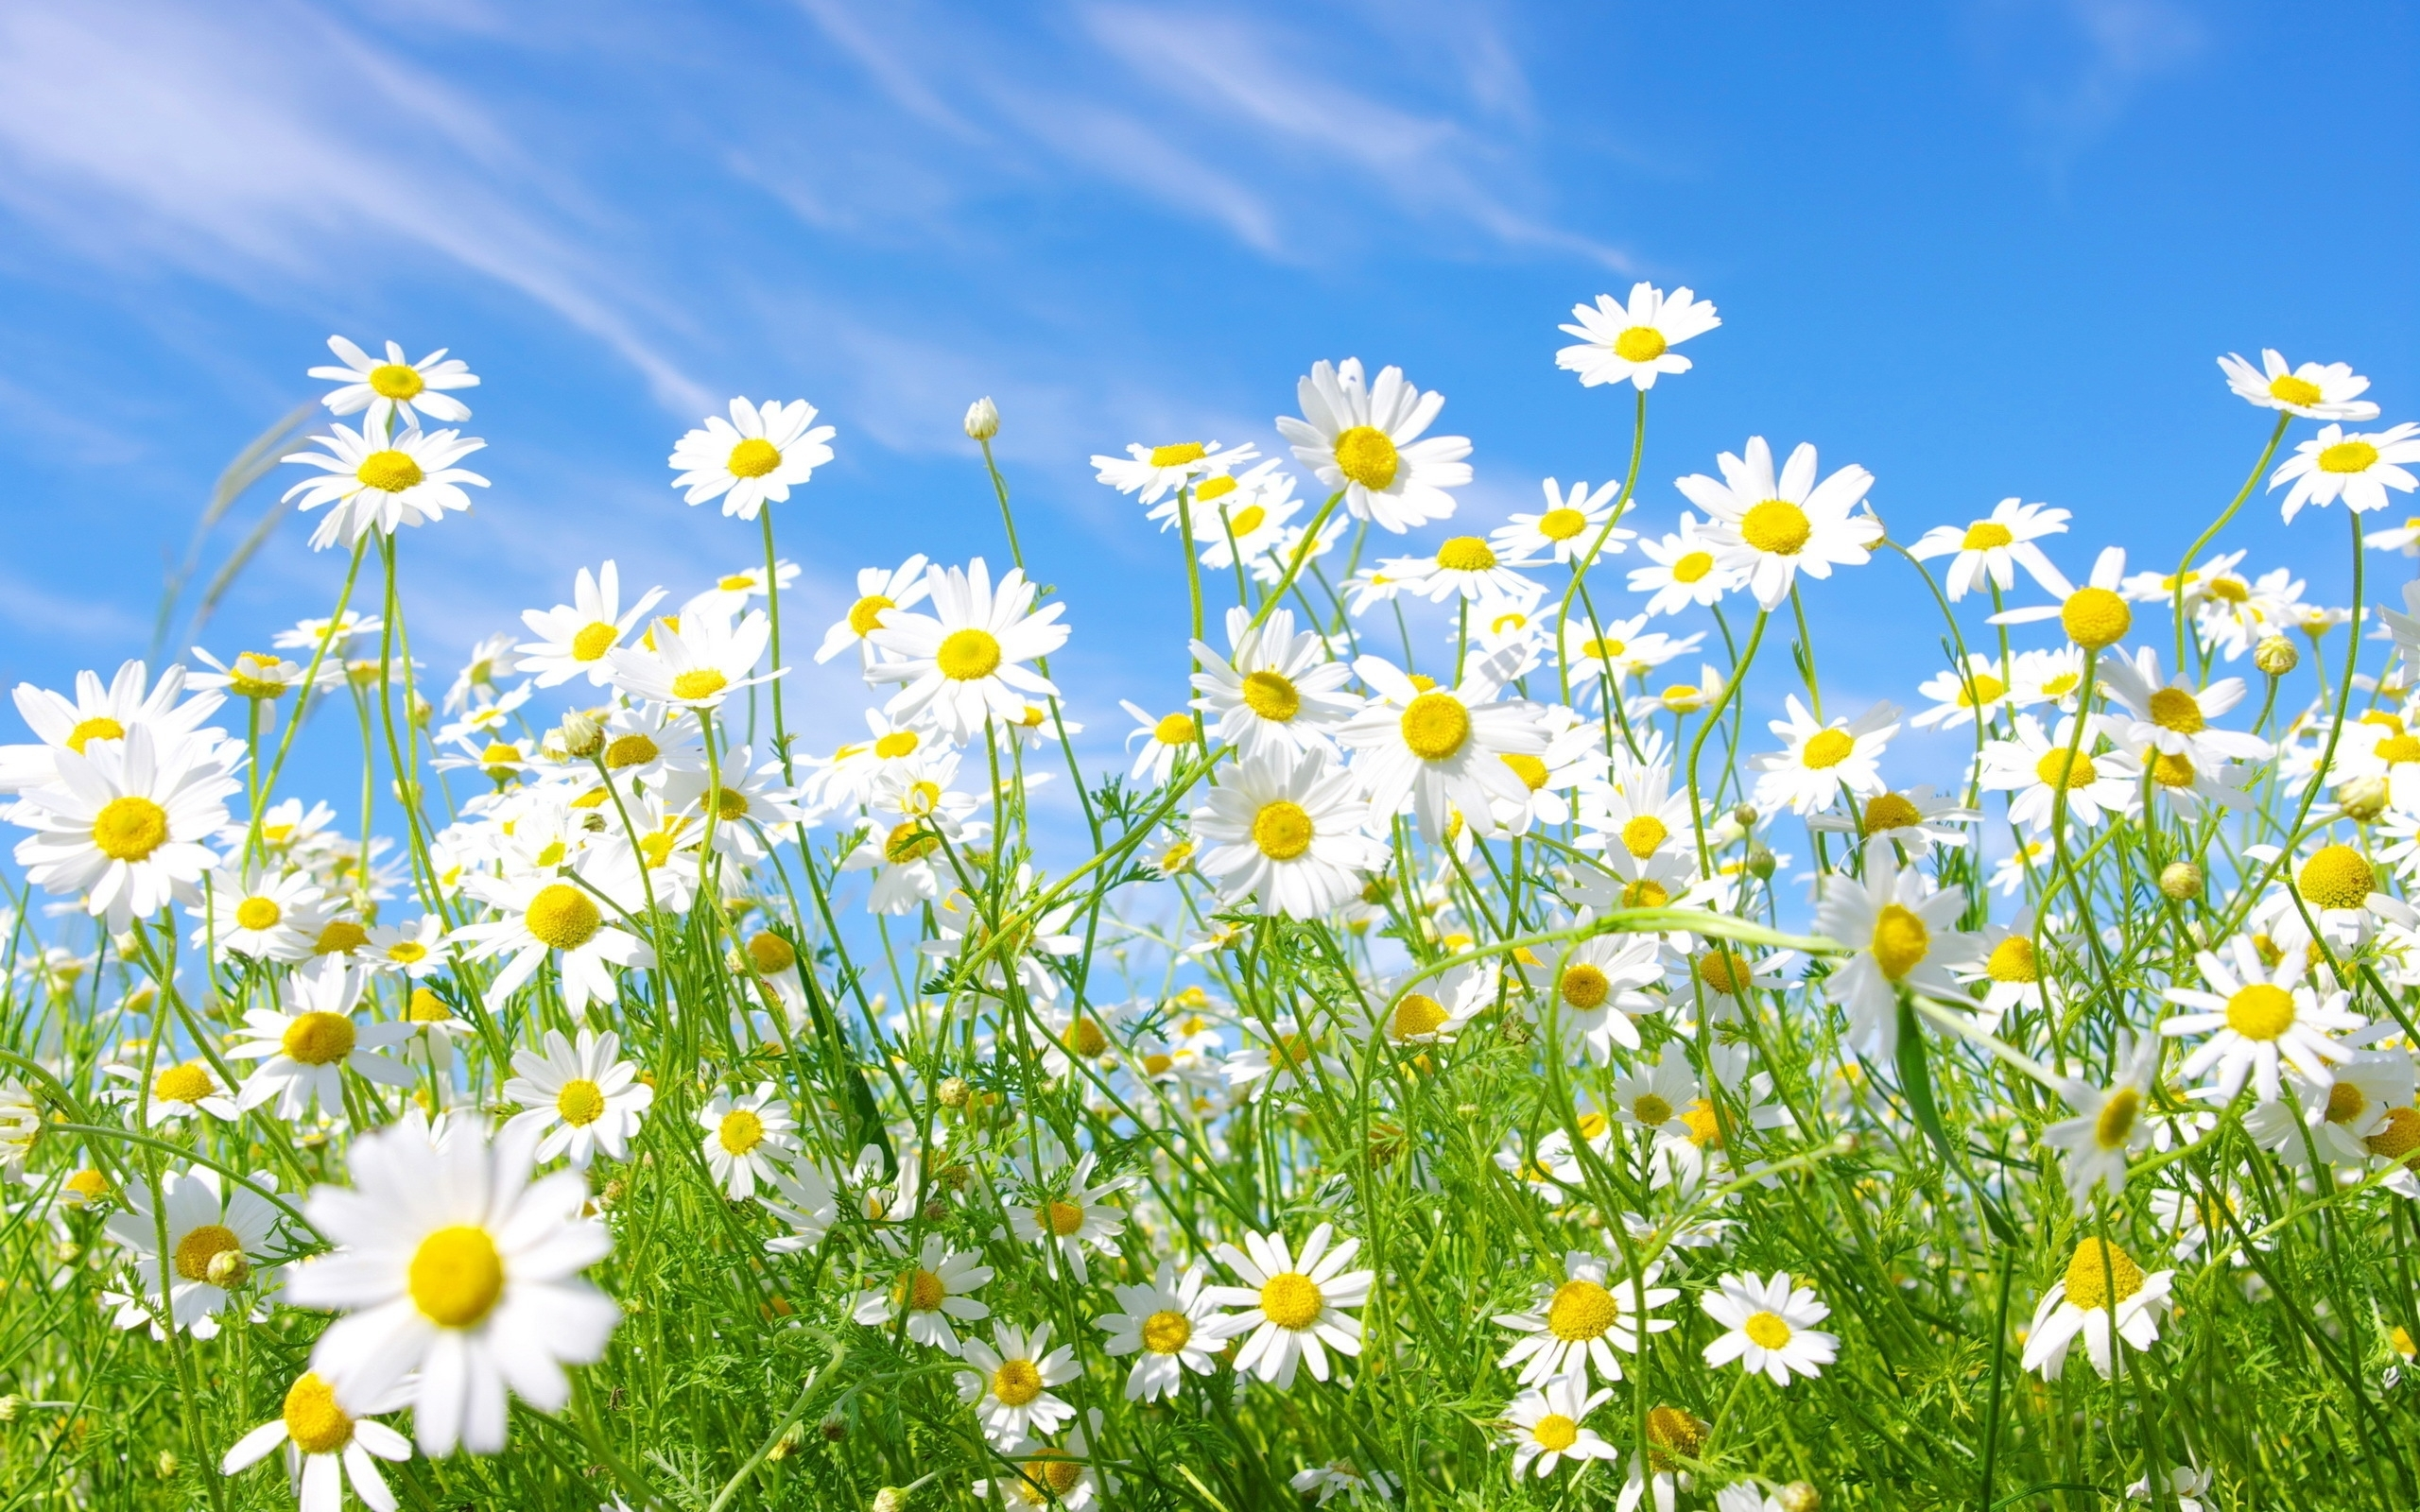 43981 download wallpaper Plants, Flowers, Camomile screensavers and pictures for free